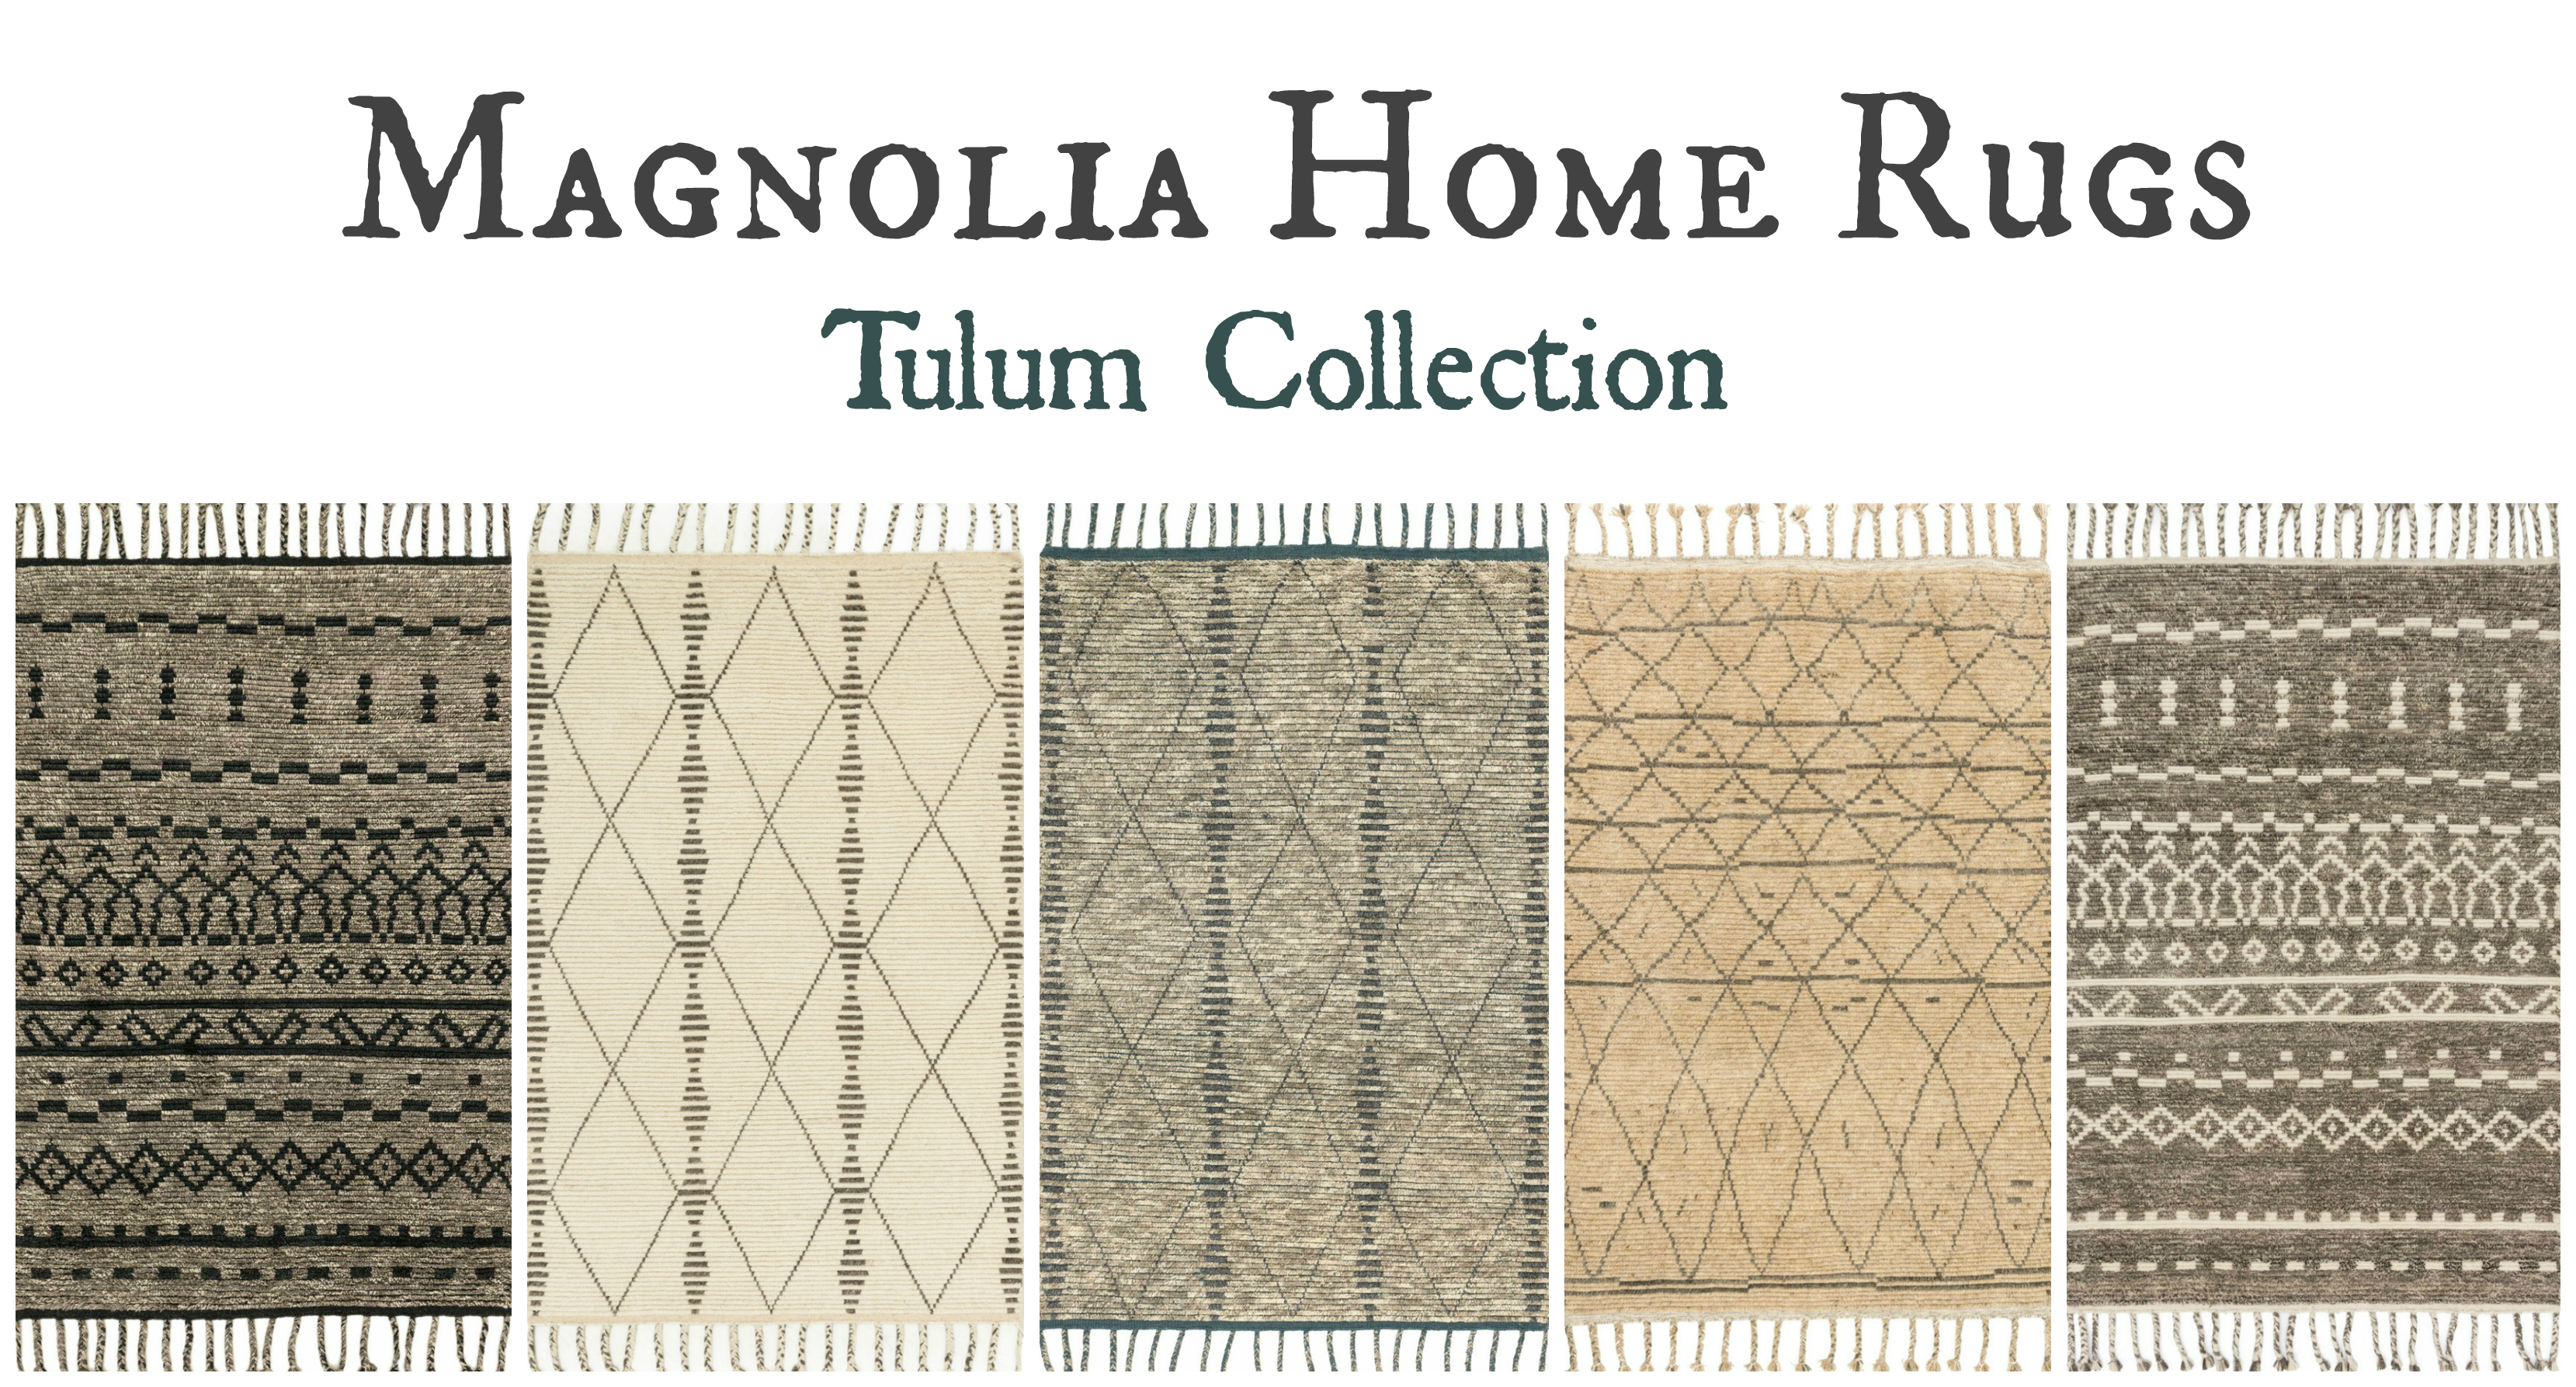 Magnolia Home Rugs Tulum Collection